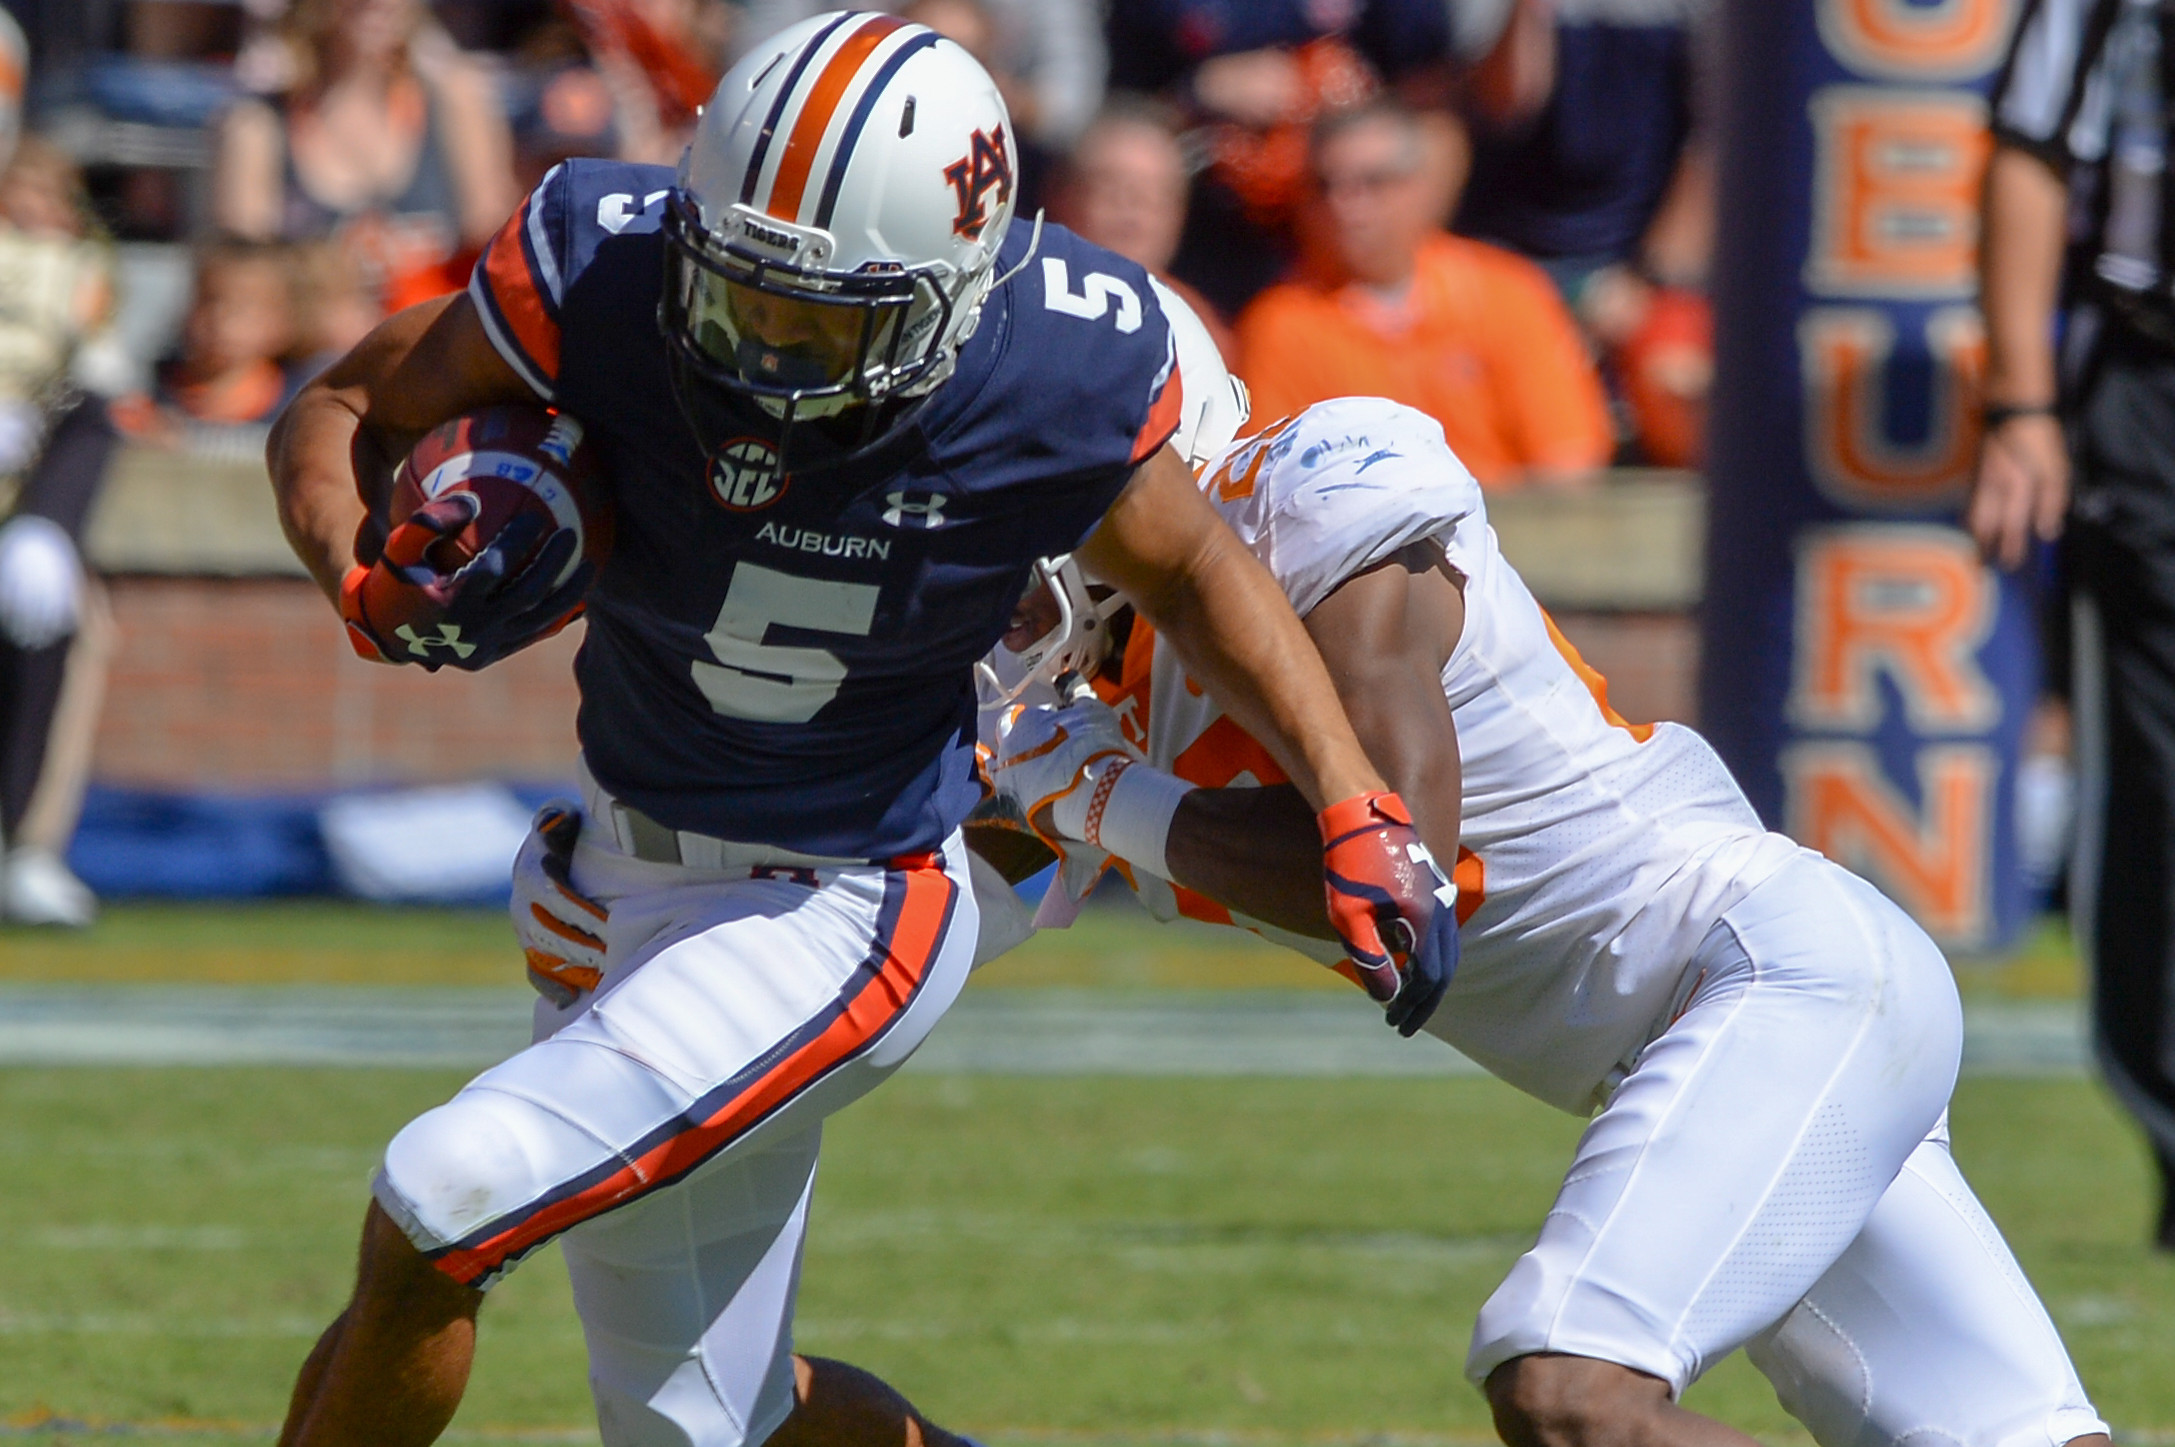 Auburn Tigers wide receiver Anthony Schwartz (5) breaks a tackle by Tennessee Volunteers defensive back Bryce Thompson (20) during the first half of Saturday's game, at Jordan-Hare Stadium in Auburn, AL. Daily Mountain Eagle -  Jeff Johnsey